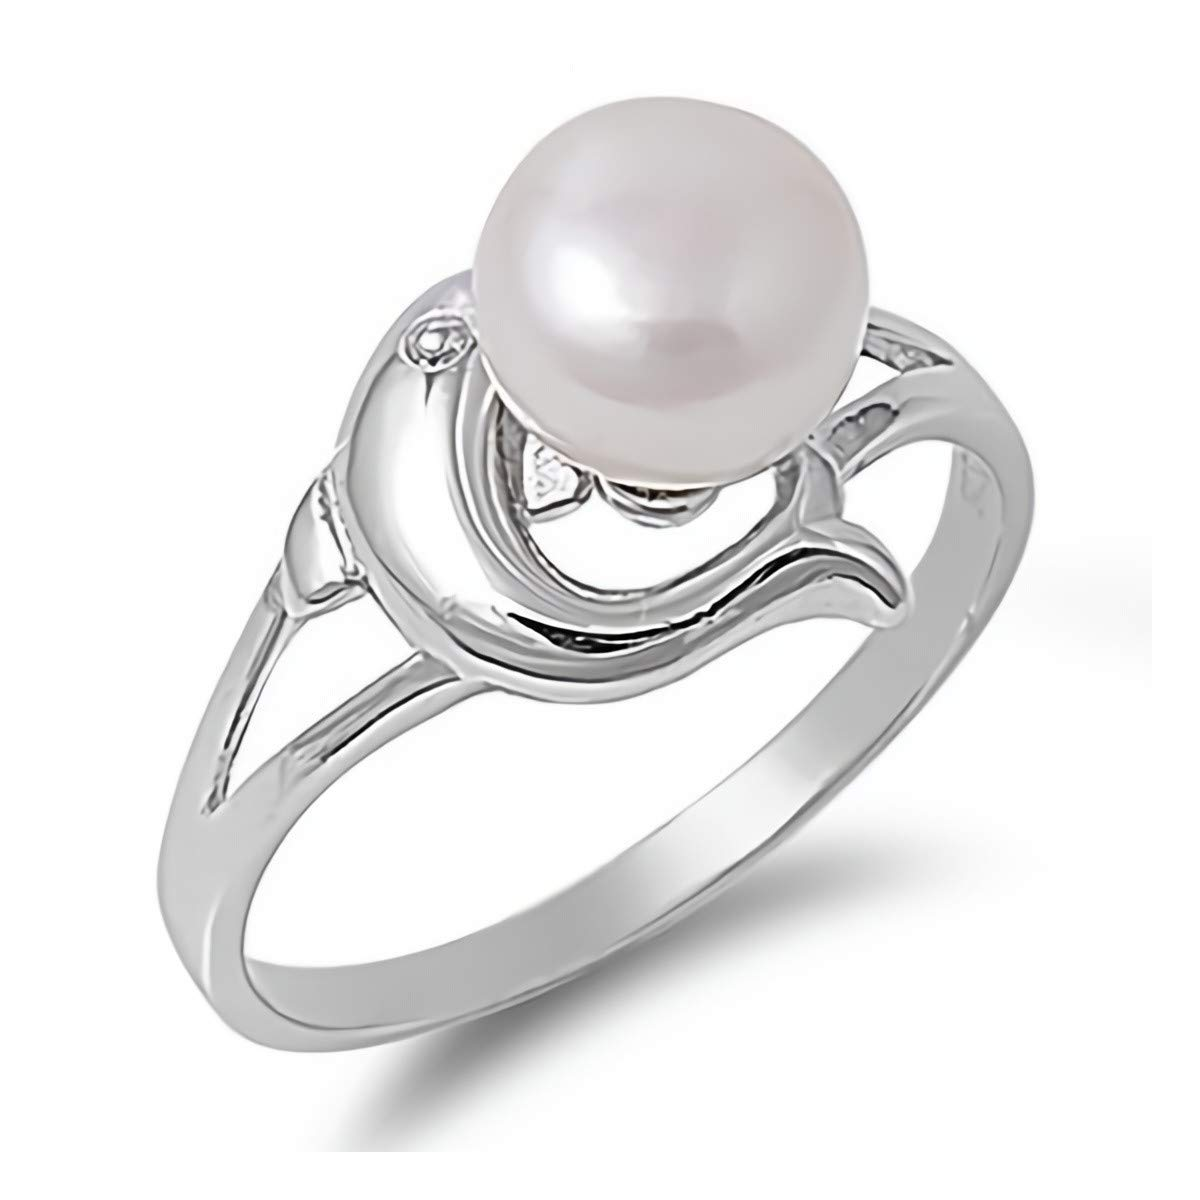 Glitzs Jewels 925 Sterling Silver CZ Cubic Zirconia Simulated Pearl Ring for Women Dolphin